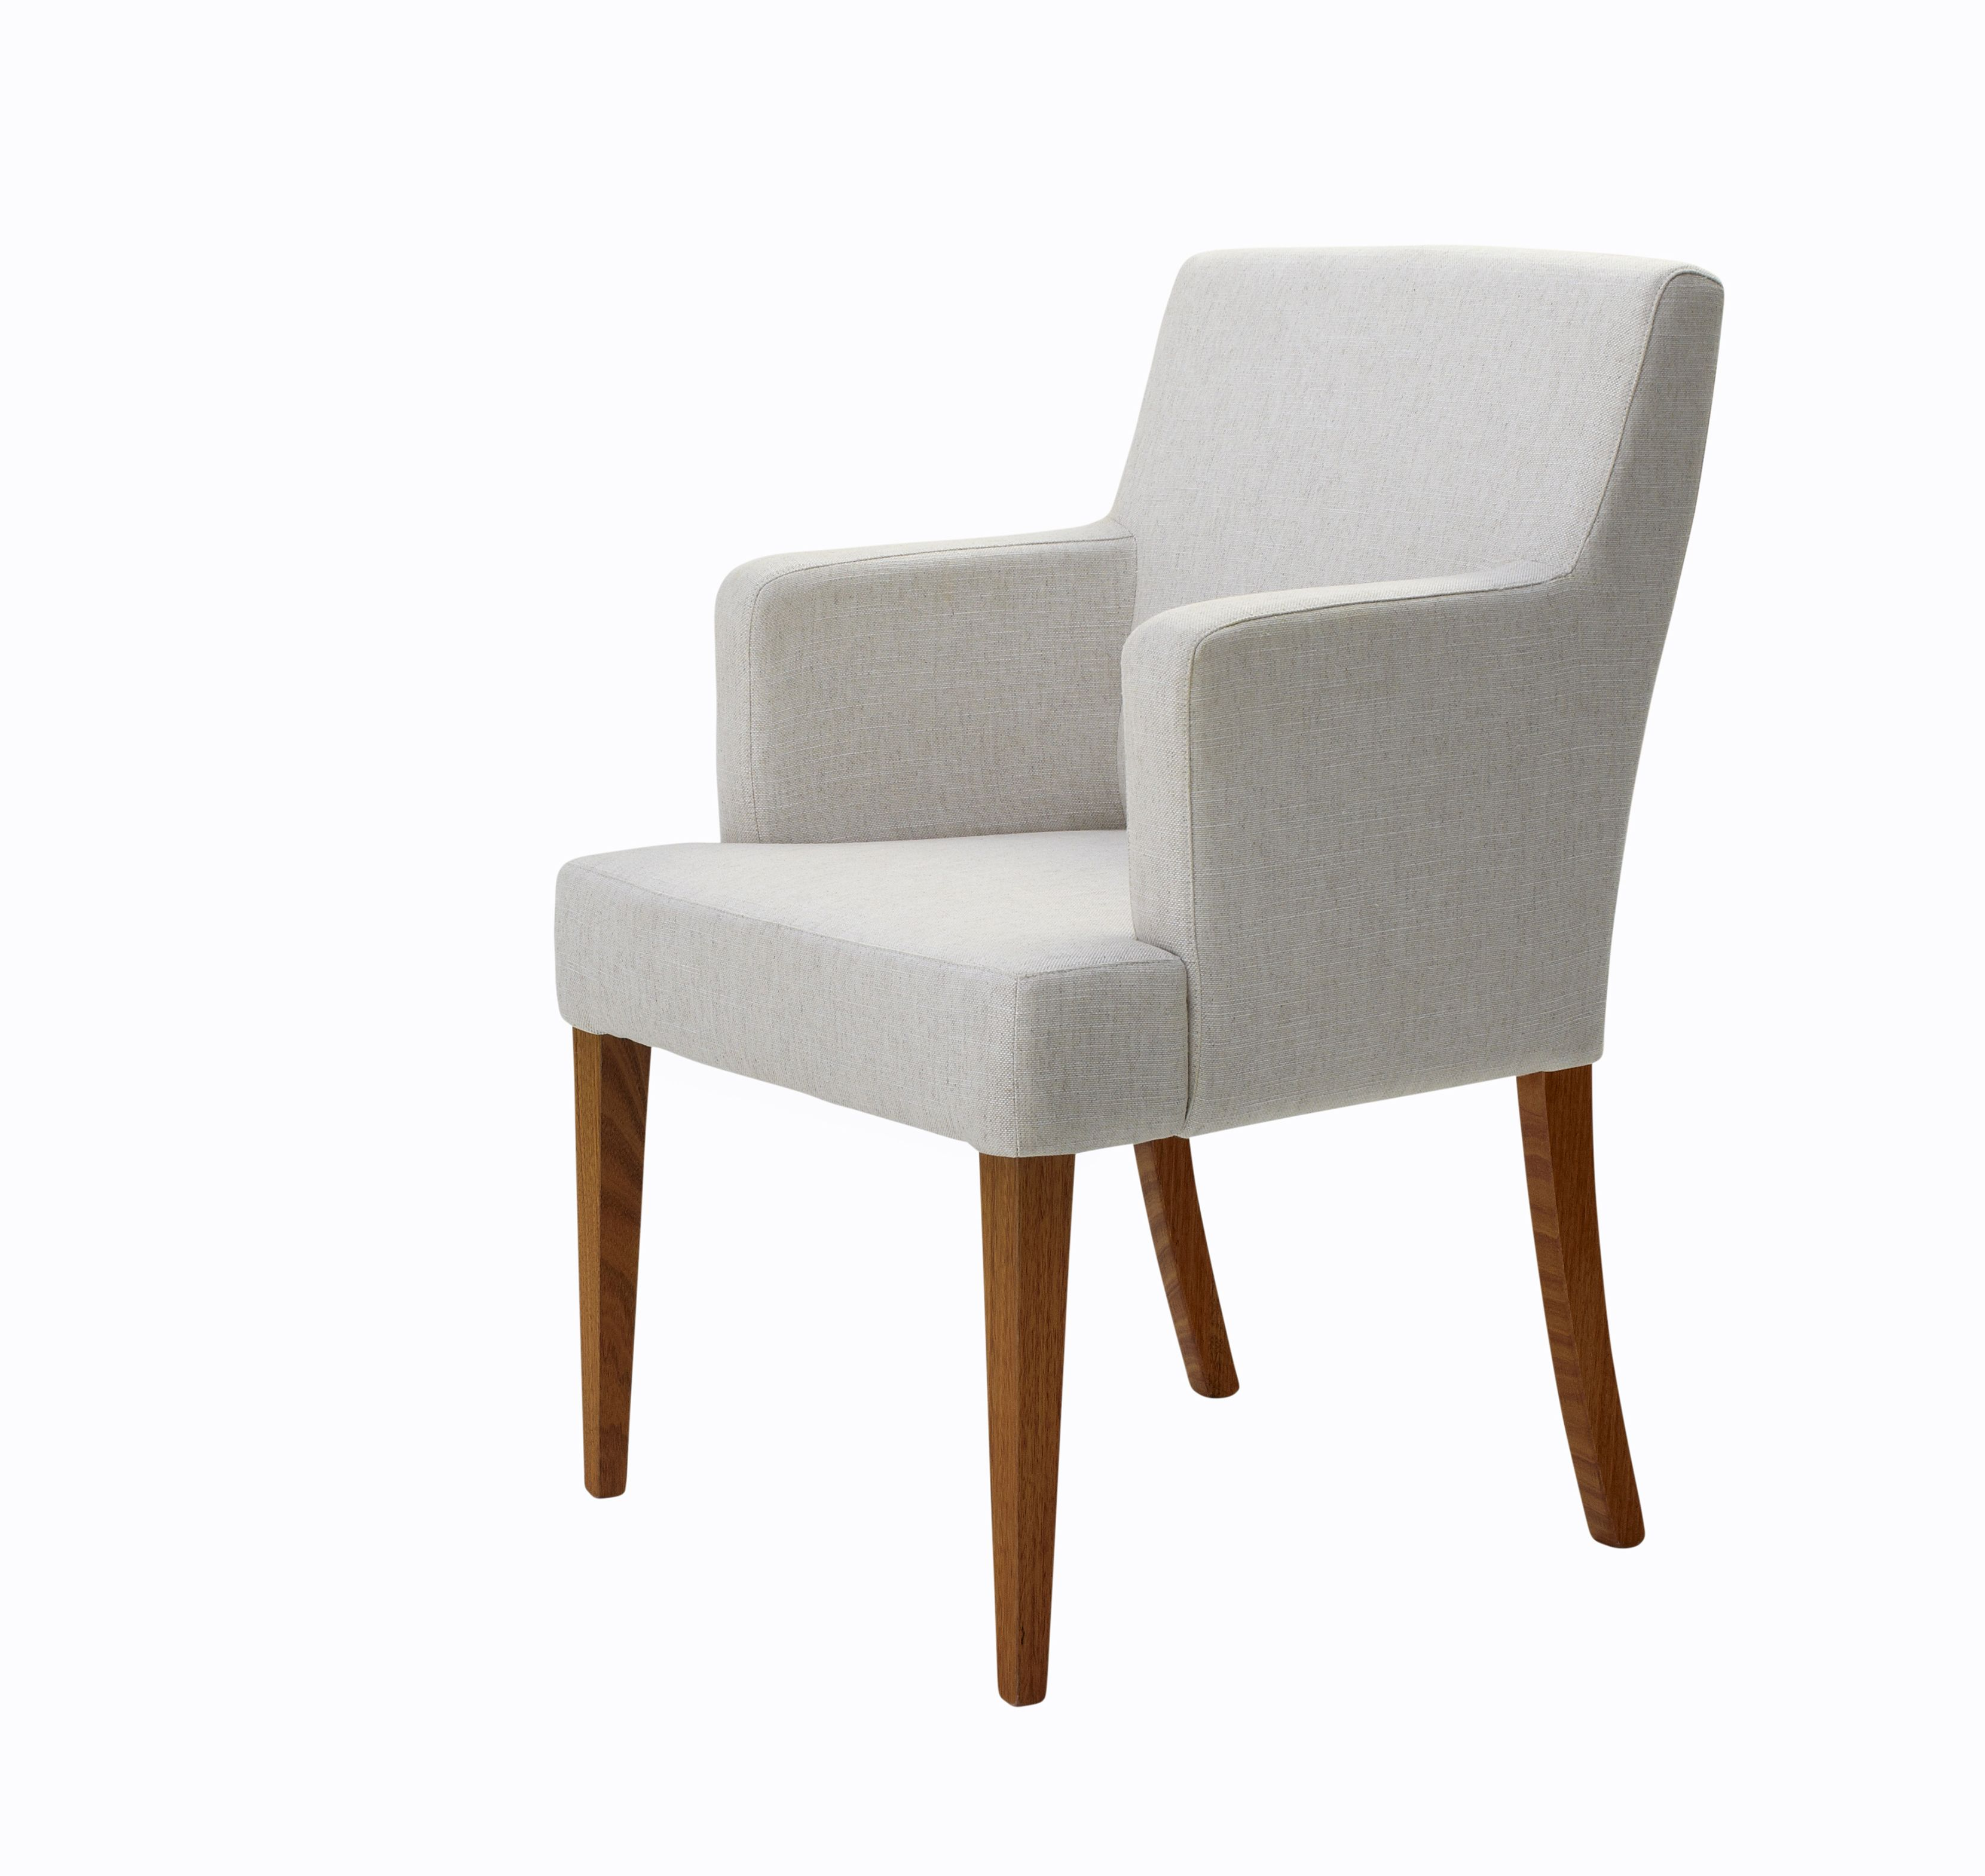 Www Evanjohnphilp Com Au In 2020 Commercial Furniture Chair Furniture